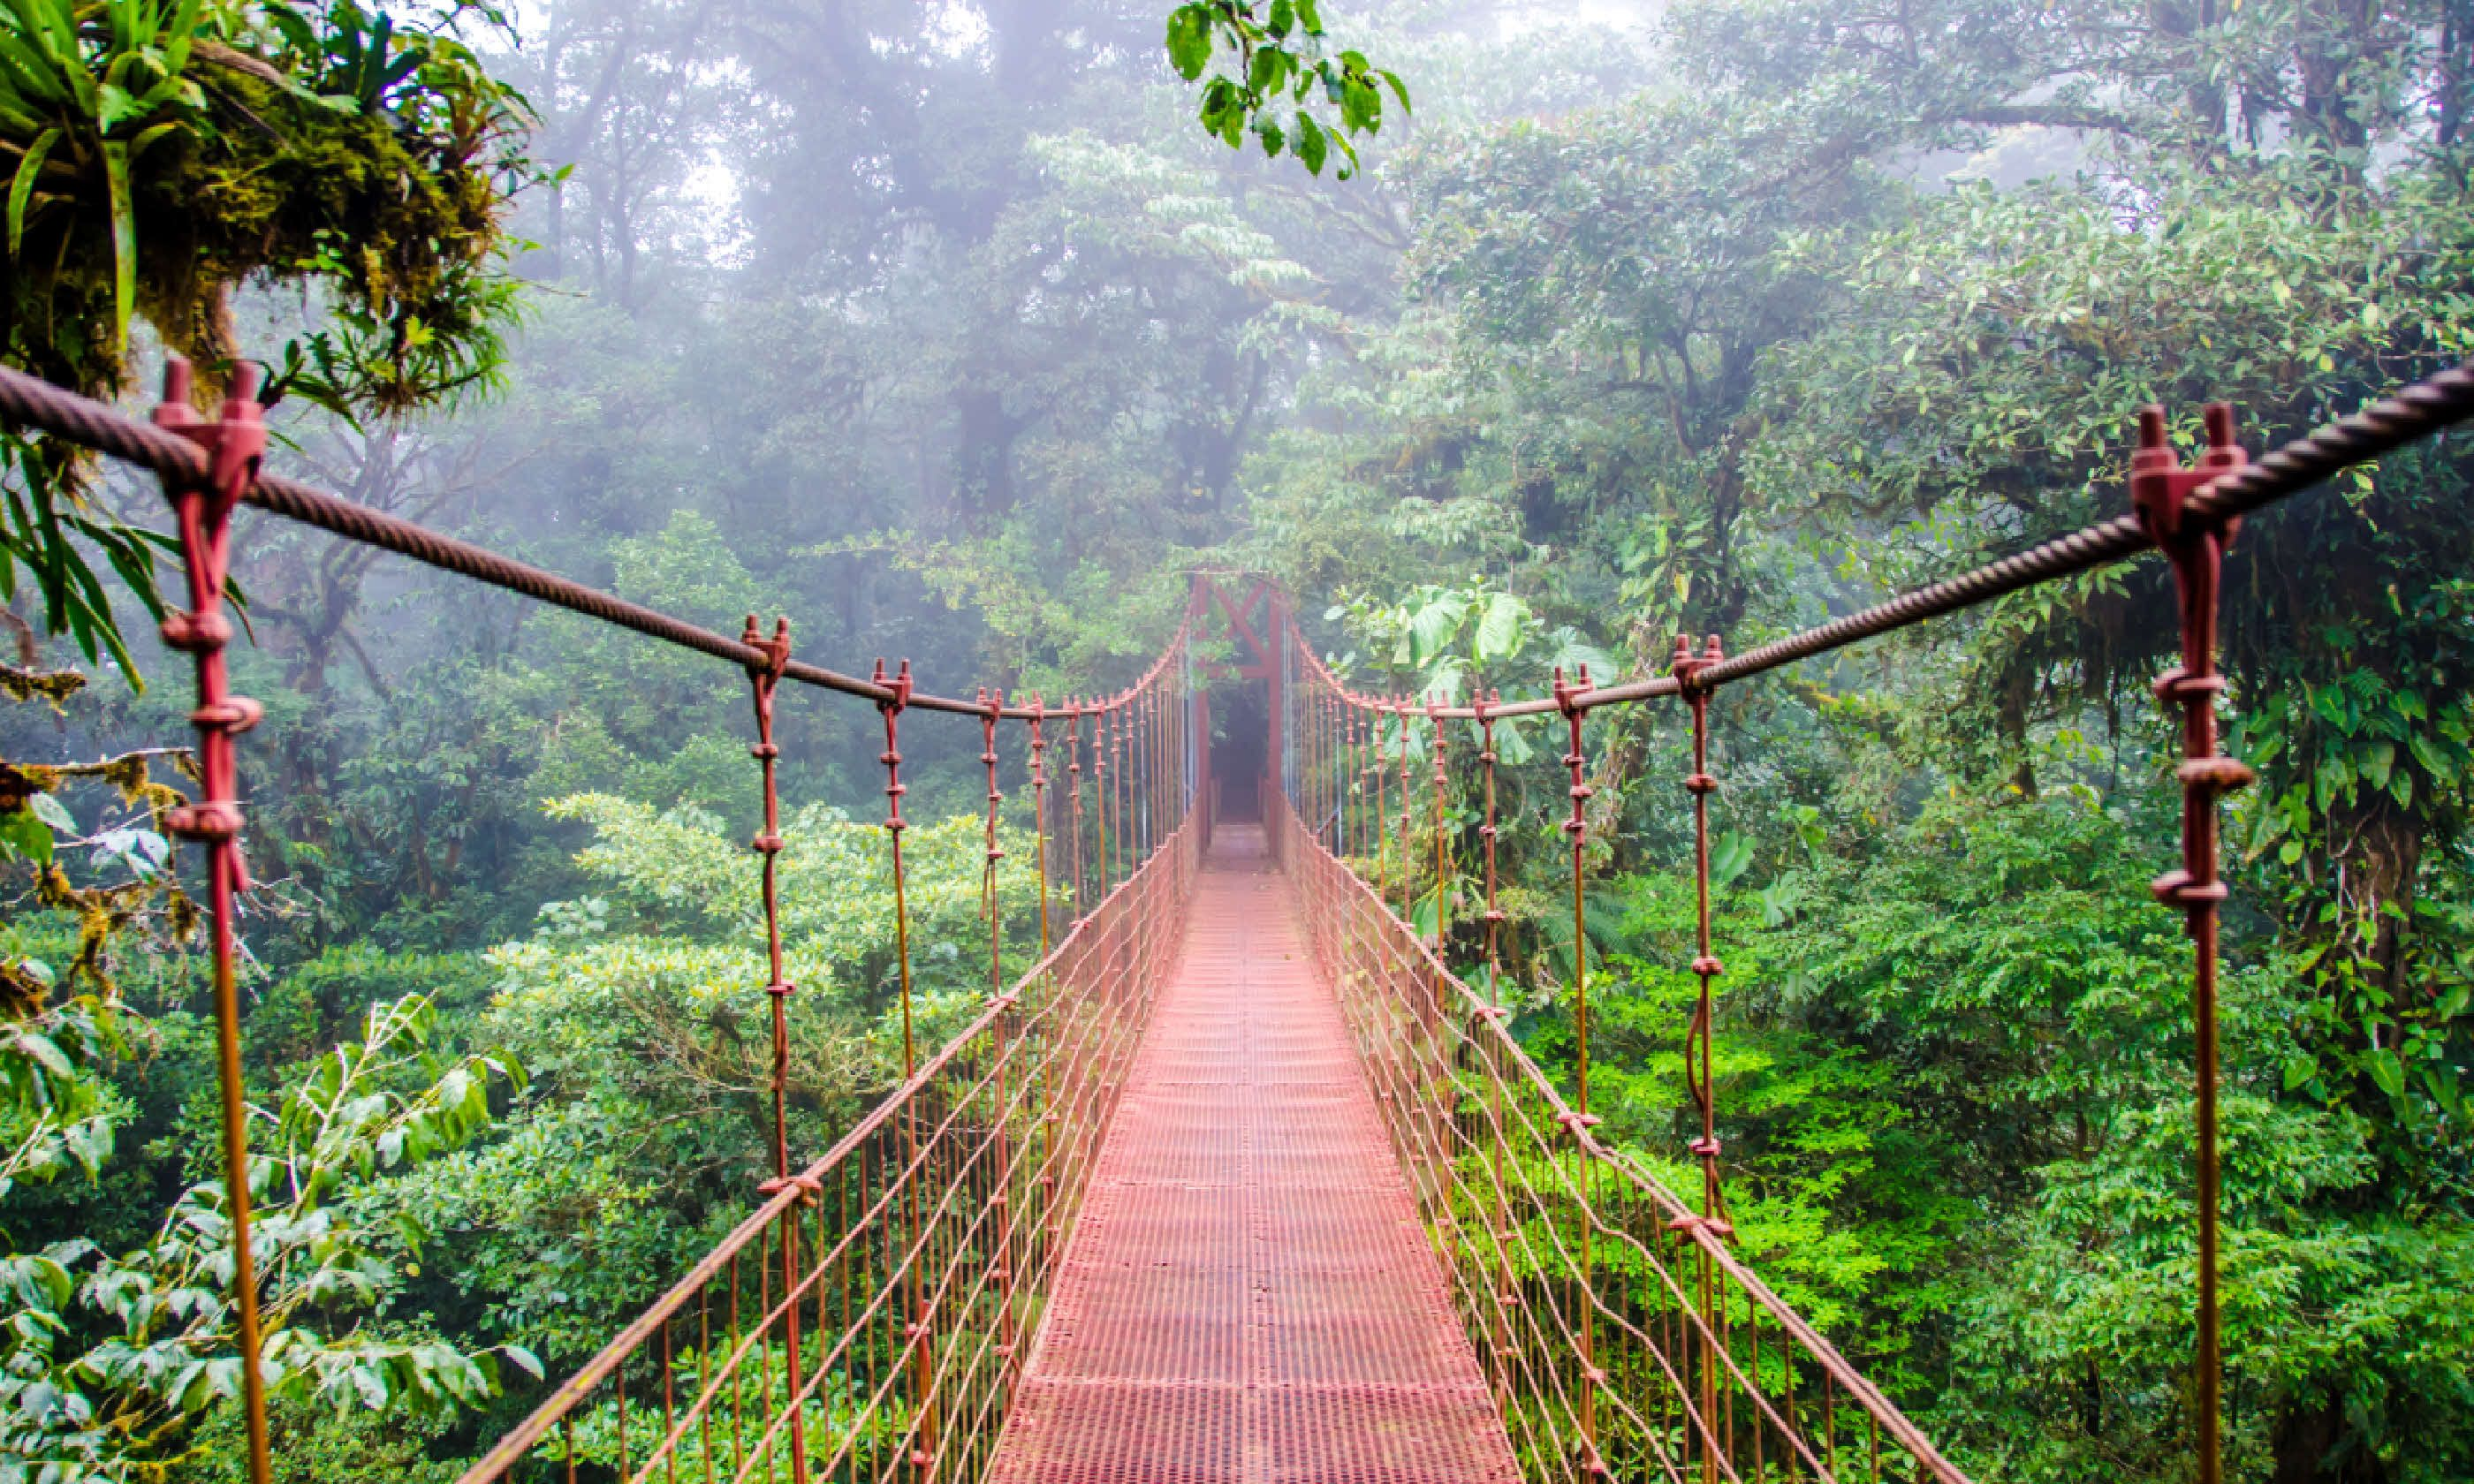 Bridge in rainforest, Costa Rica (Shutterstock)